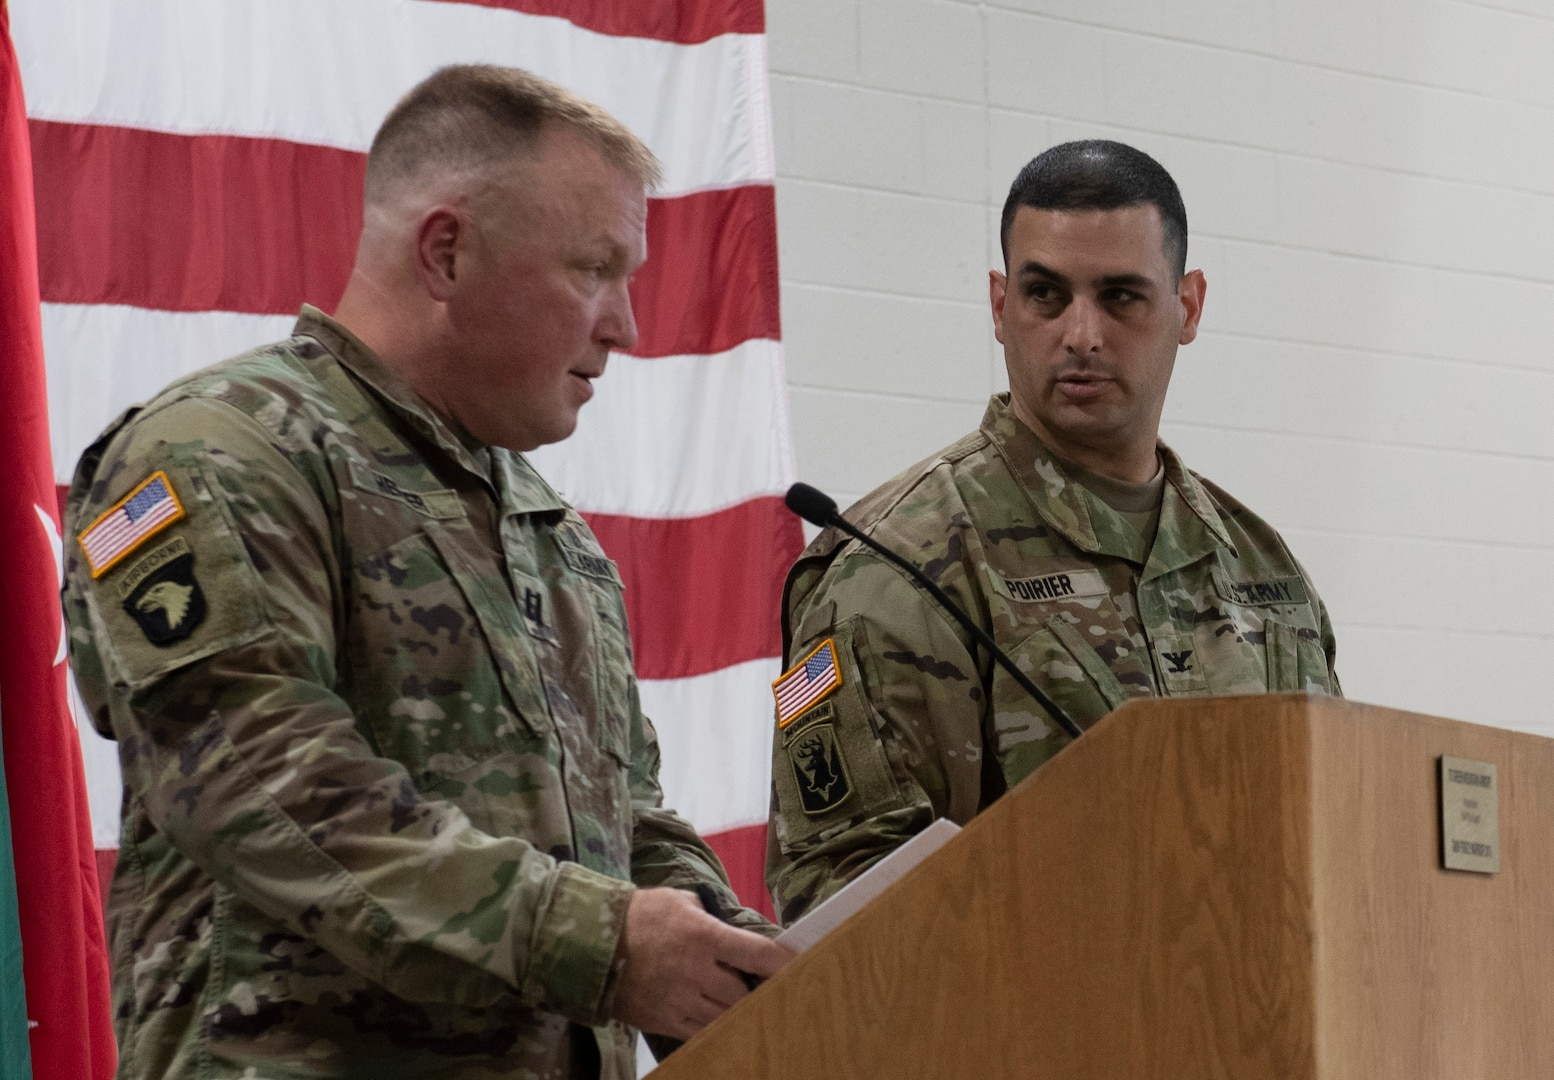 Col. Leonard Poirier (right), officer in charge of Task Force Mansfield, and Capt. Mathew Hefner, an administrative officer in the Vermont National Guard's operations directorate, review a rehearsal for Task Force Mansfield's sendoff ceremony May 18, 2021, at Camp Johnson, Vermont. Approximately 50 guests attended the ceremony, the last one of several that have seen the deployment of more than 1,000 Vermont National Guard Soldiers. (U.S. Army National Guard photo by Don Branum)